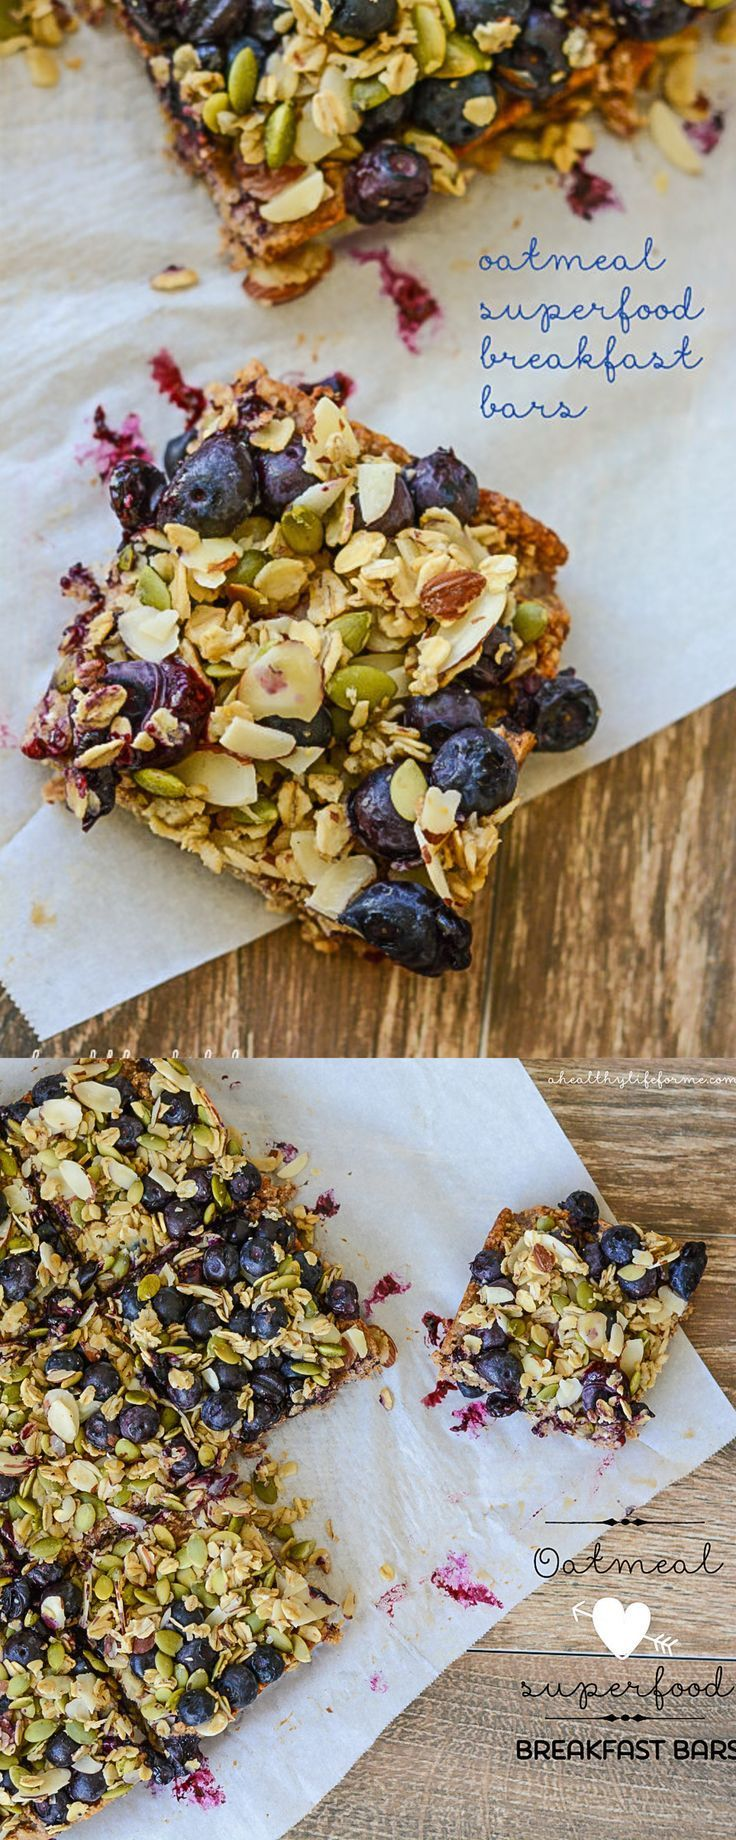 Oatmeal Blueberry Superfood Breakfast Bars by ahealthylifeforme: Loaded with healthy ingredients for a great morning pick me up. #Breakfast_Bars #Blueberry #Oatmeal #Healthy